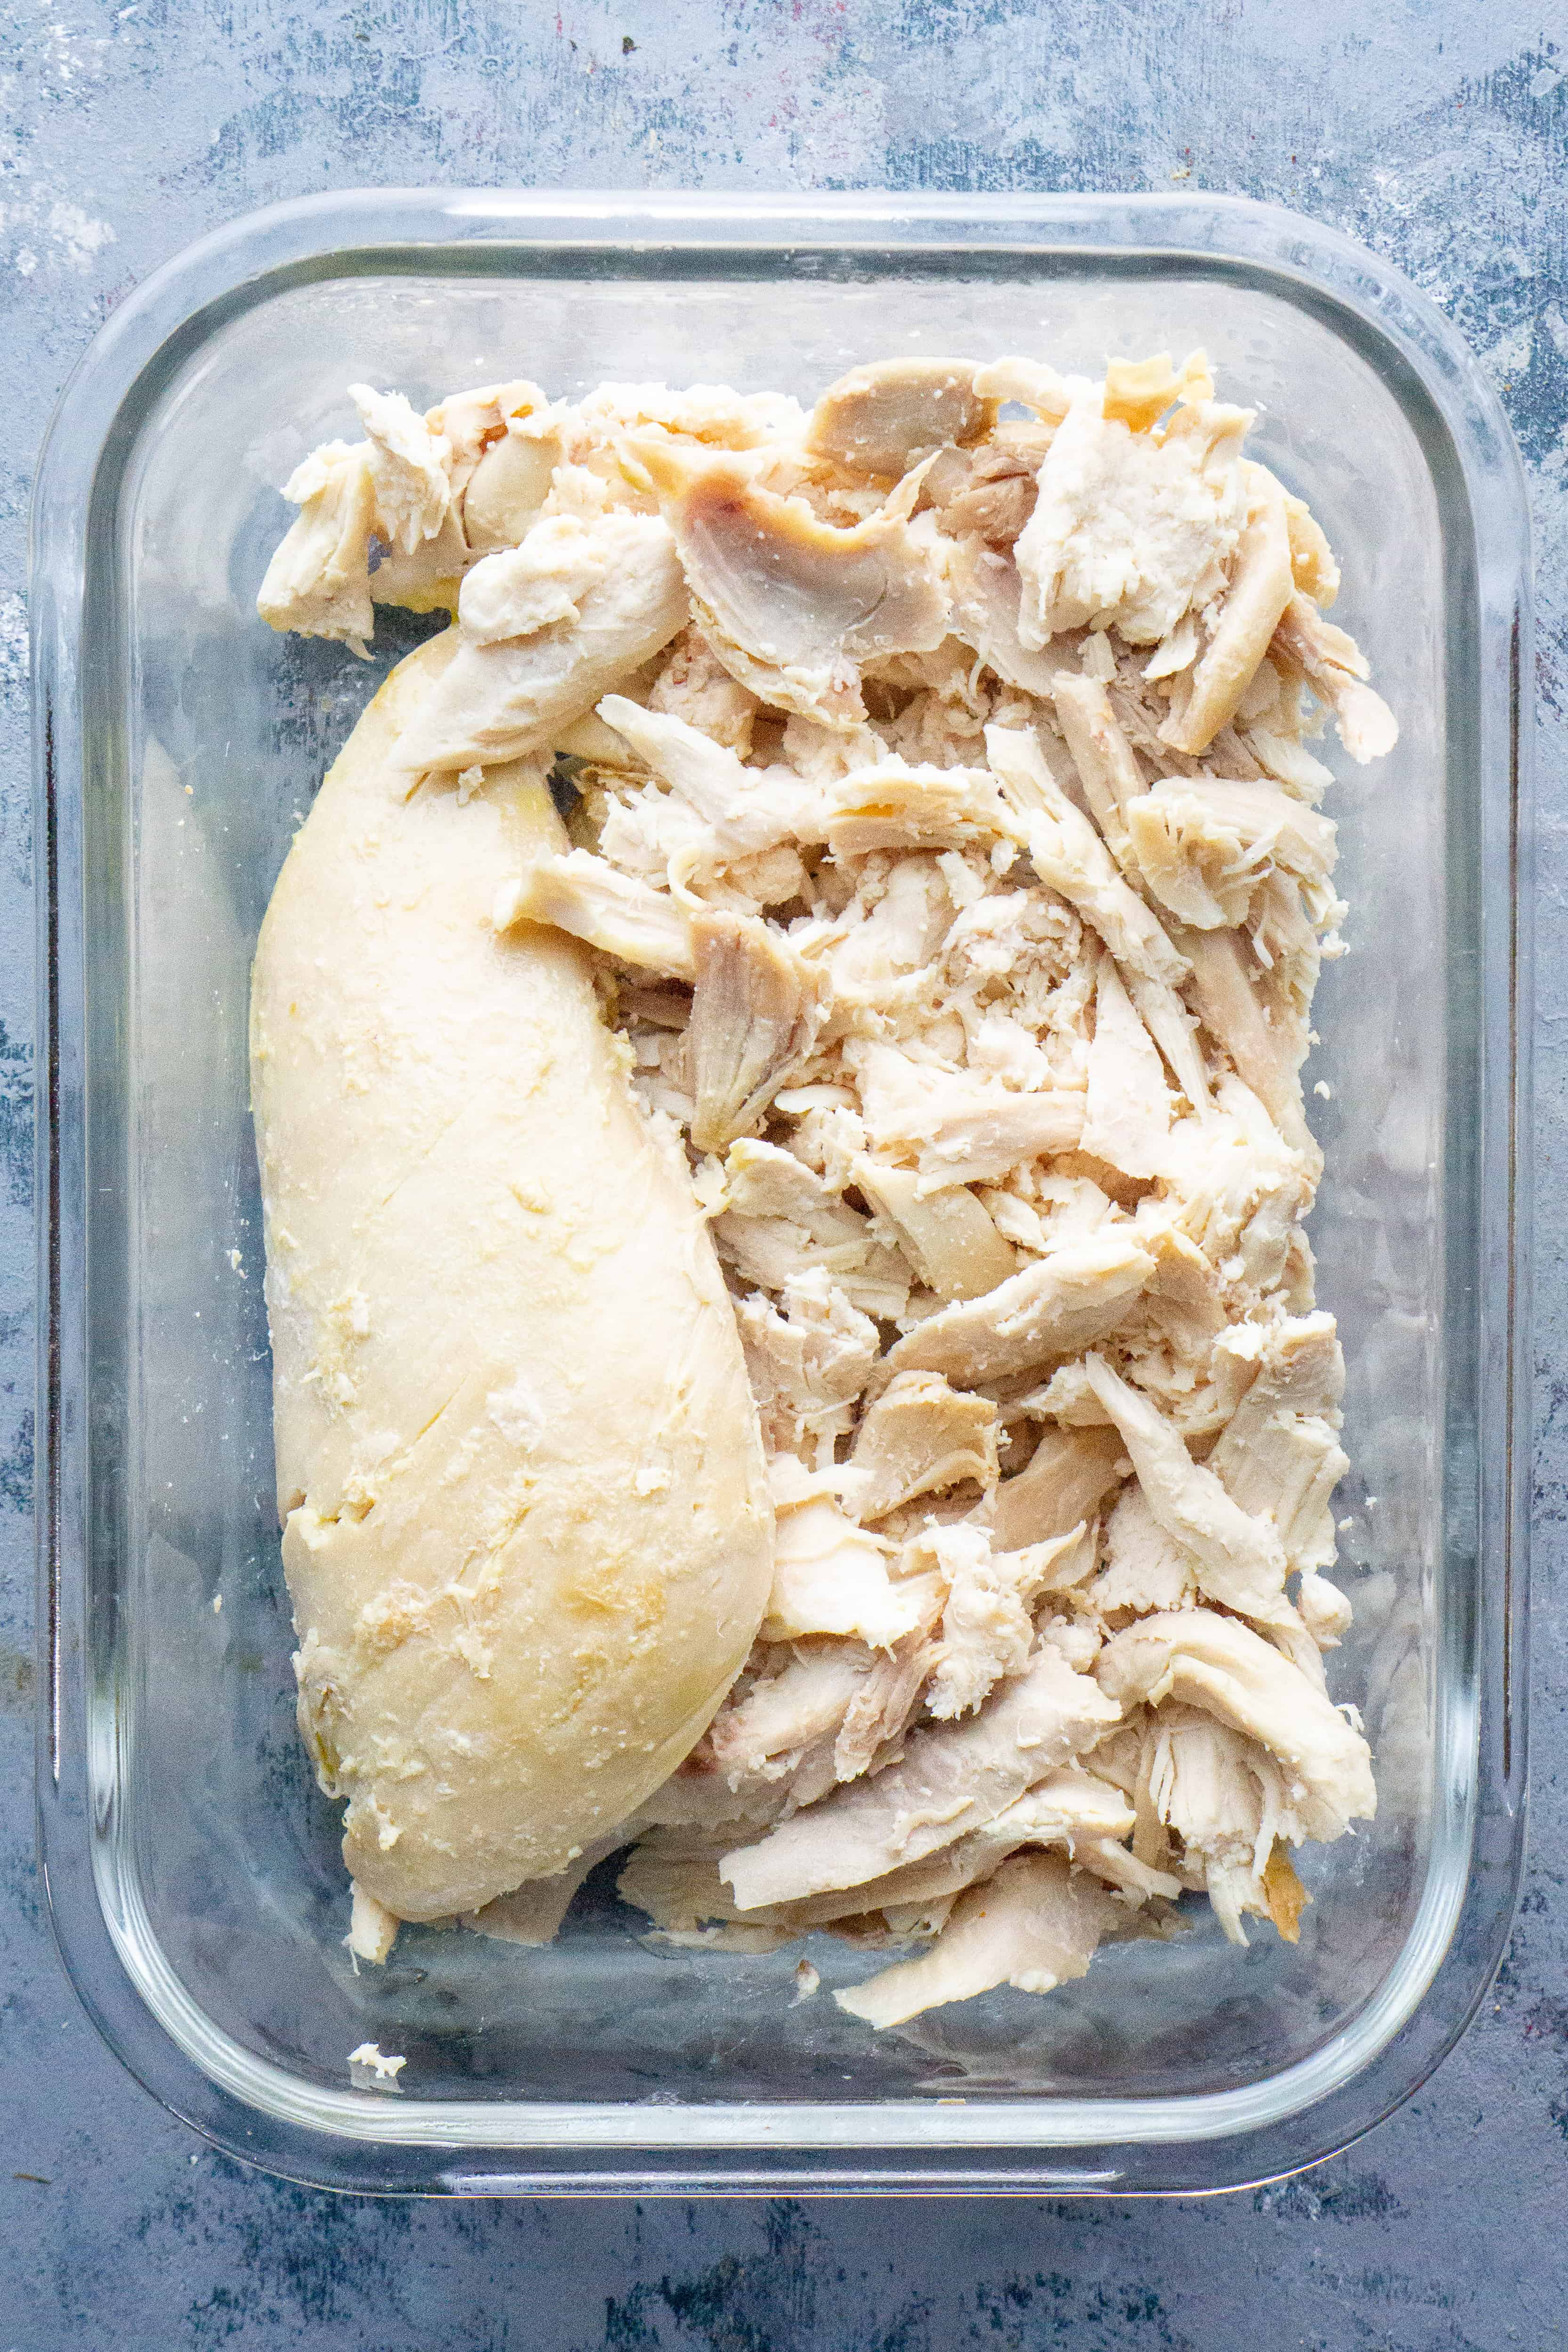 shredded chicken breast or turkey breast in glass meal prep container on grey background